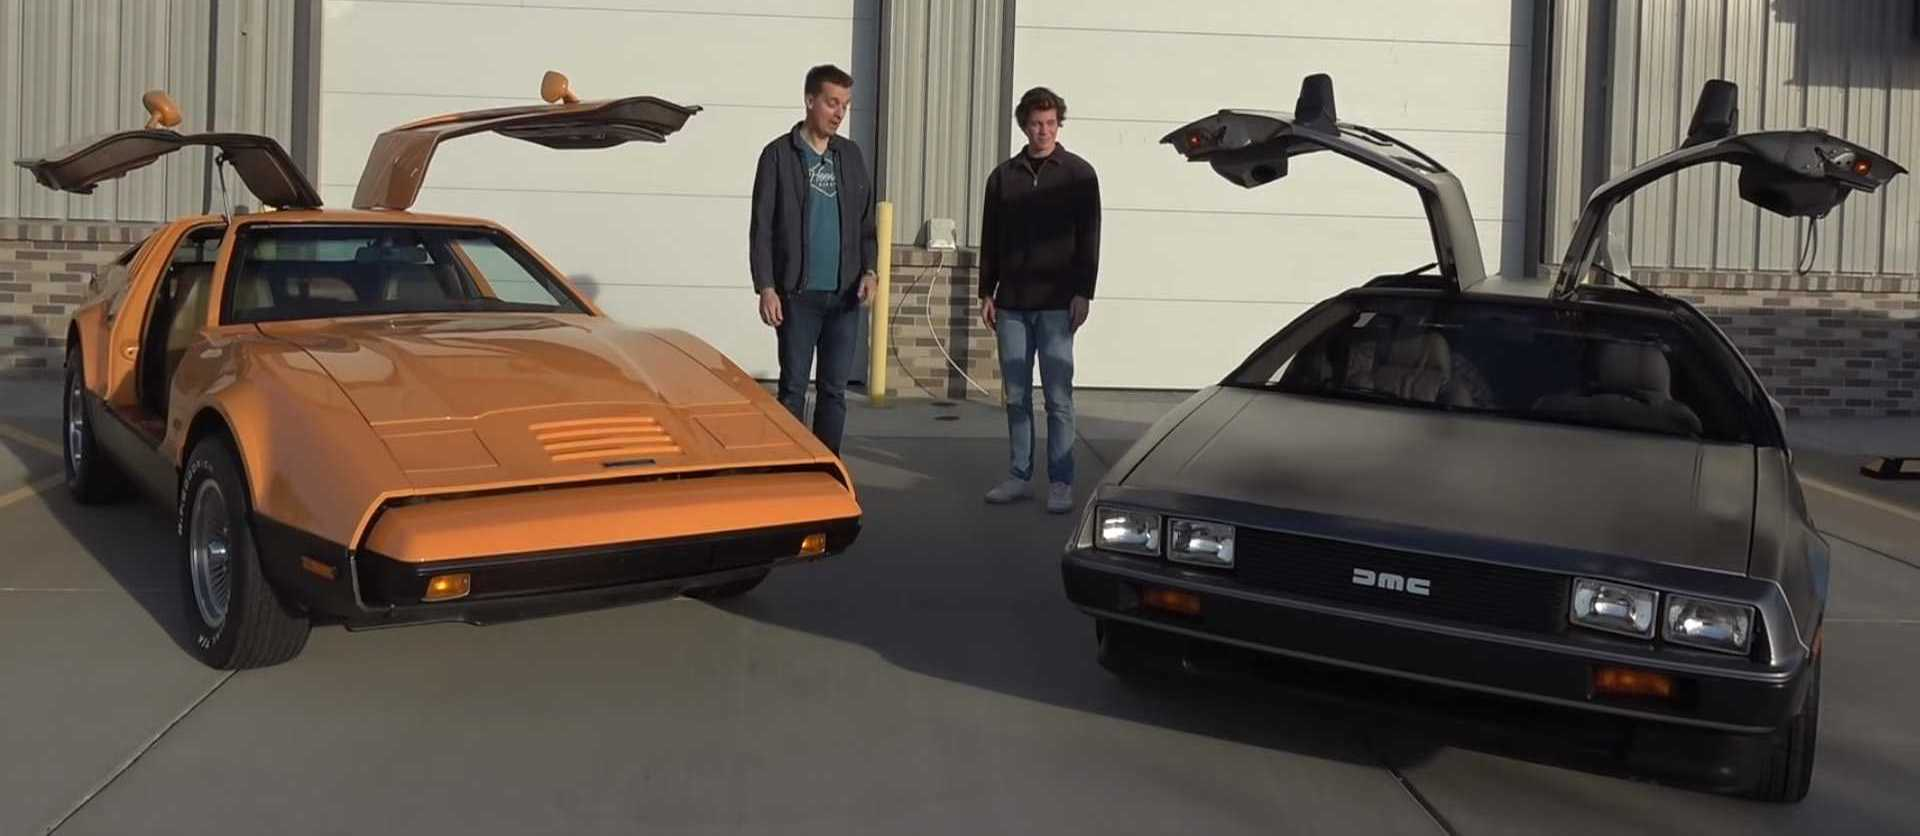 DeLorean Vs. Bricklin Drag Race Is Vintage Gullwing Gold